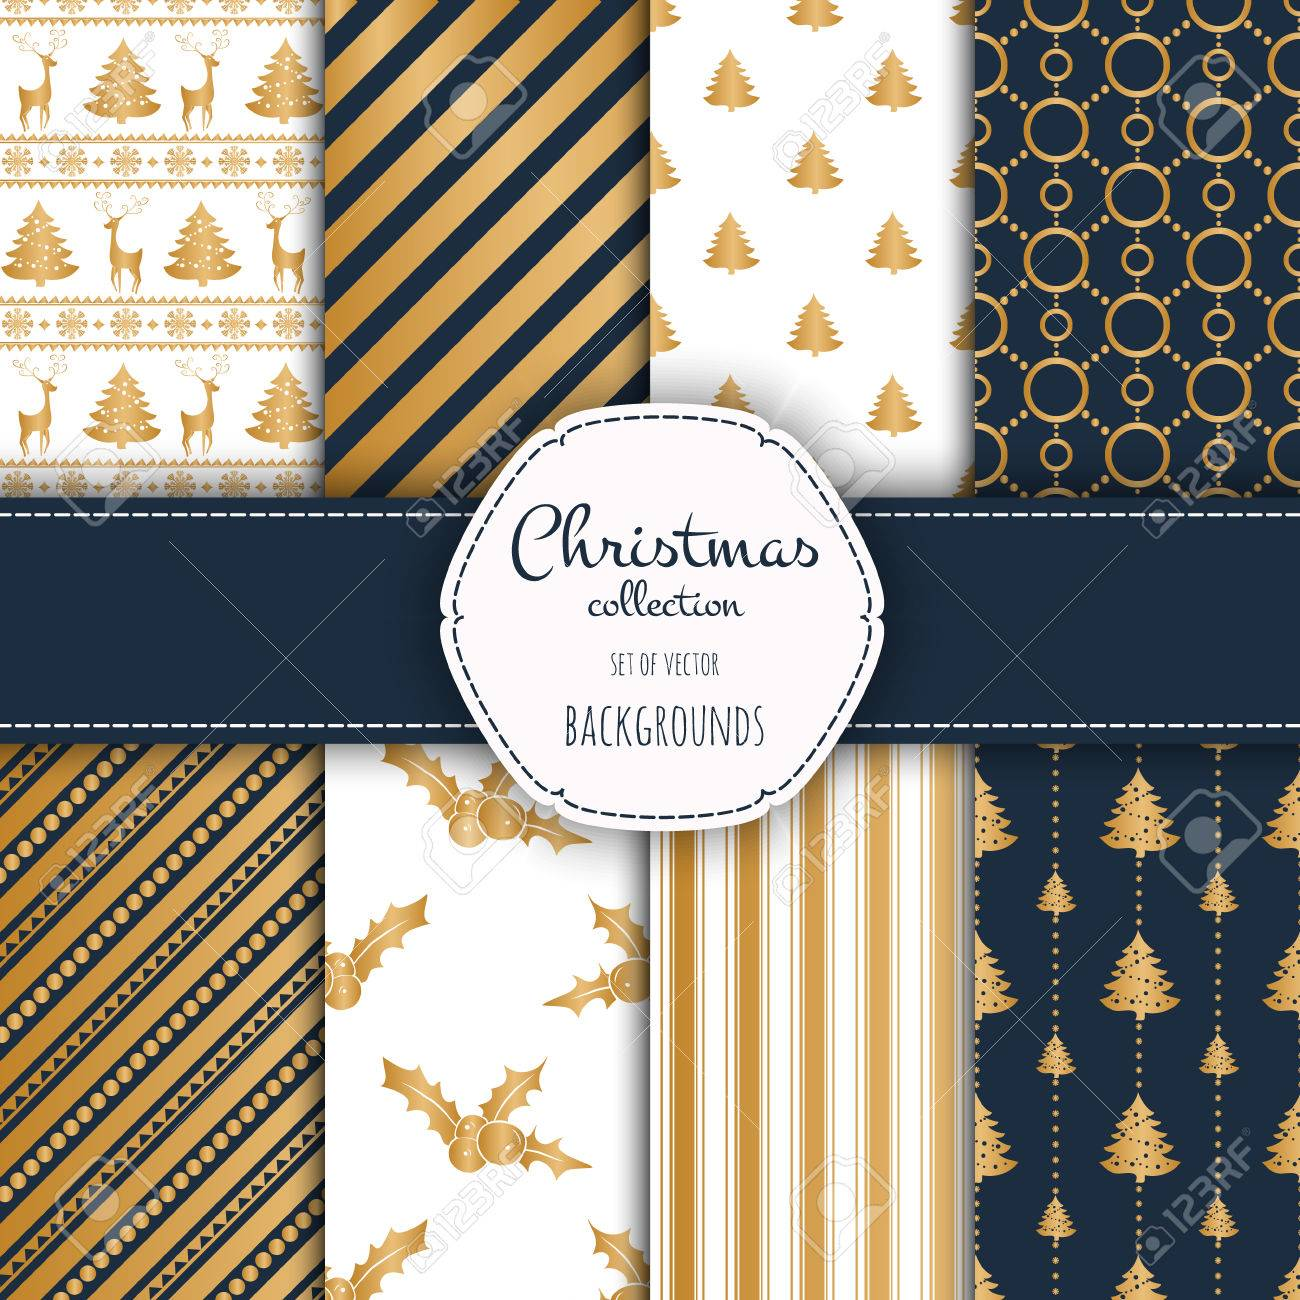 Gold collection of seamless patterns with blue and white colors. - 49417160